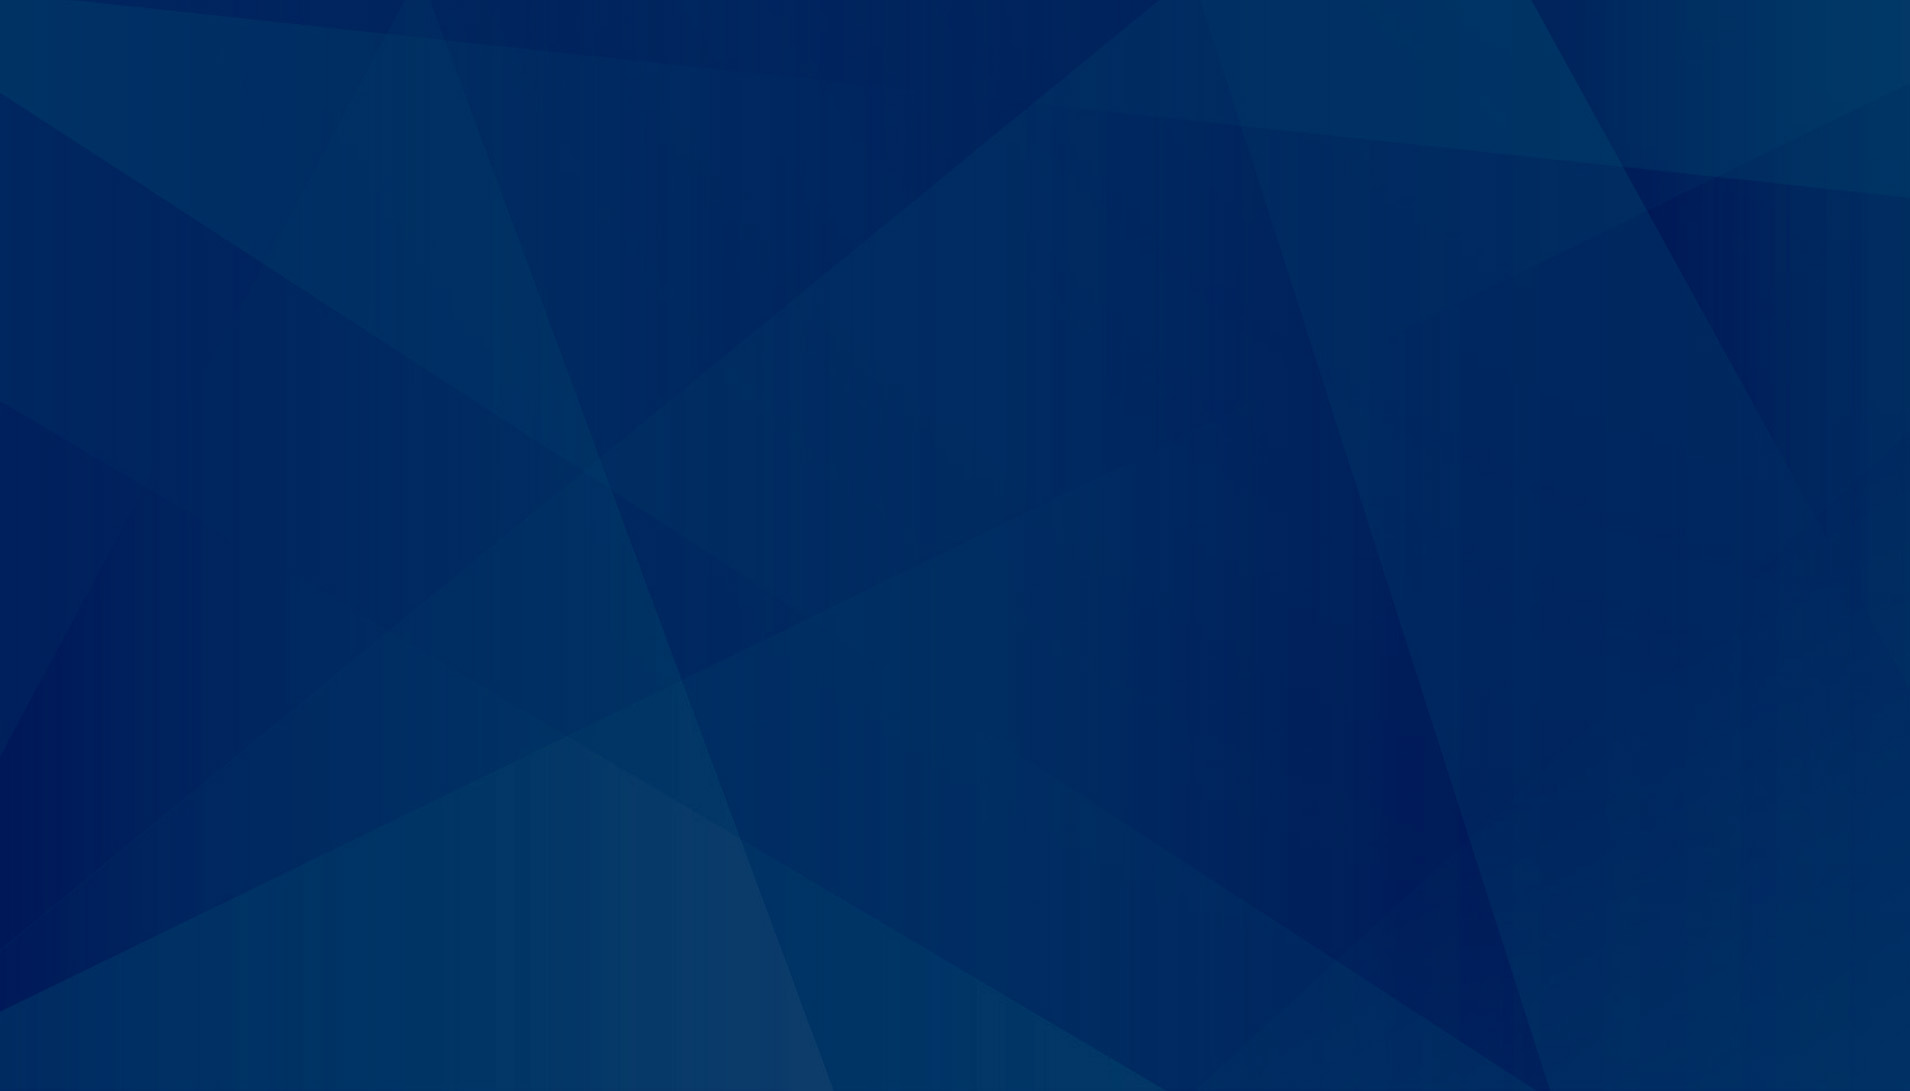 Solutions Background_navy2